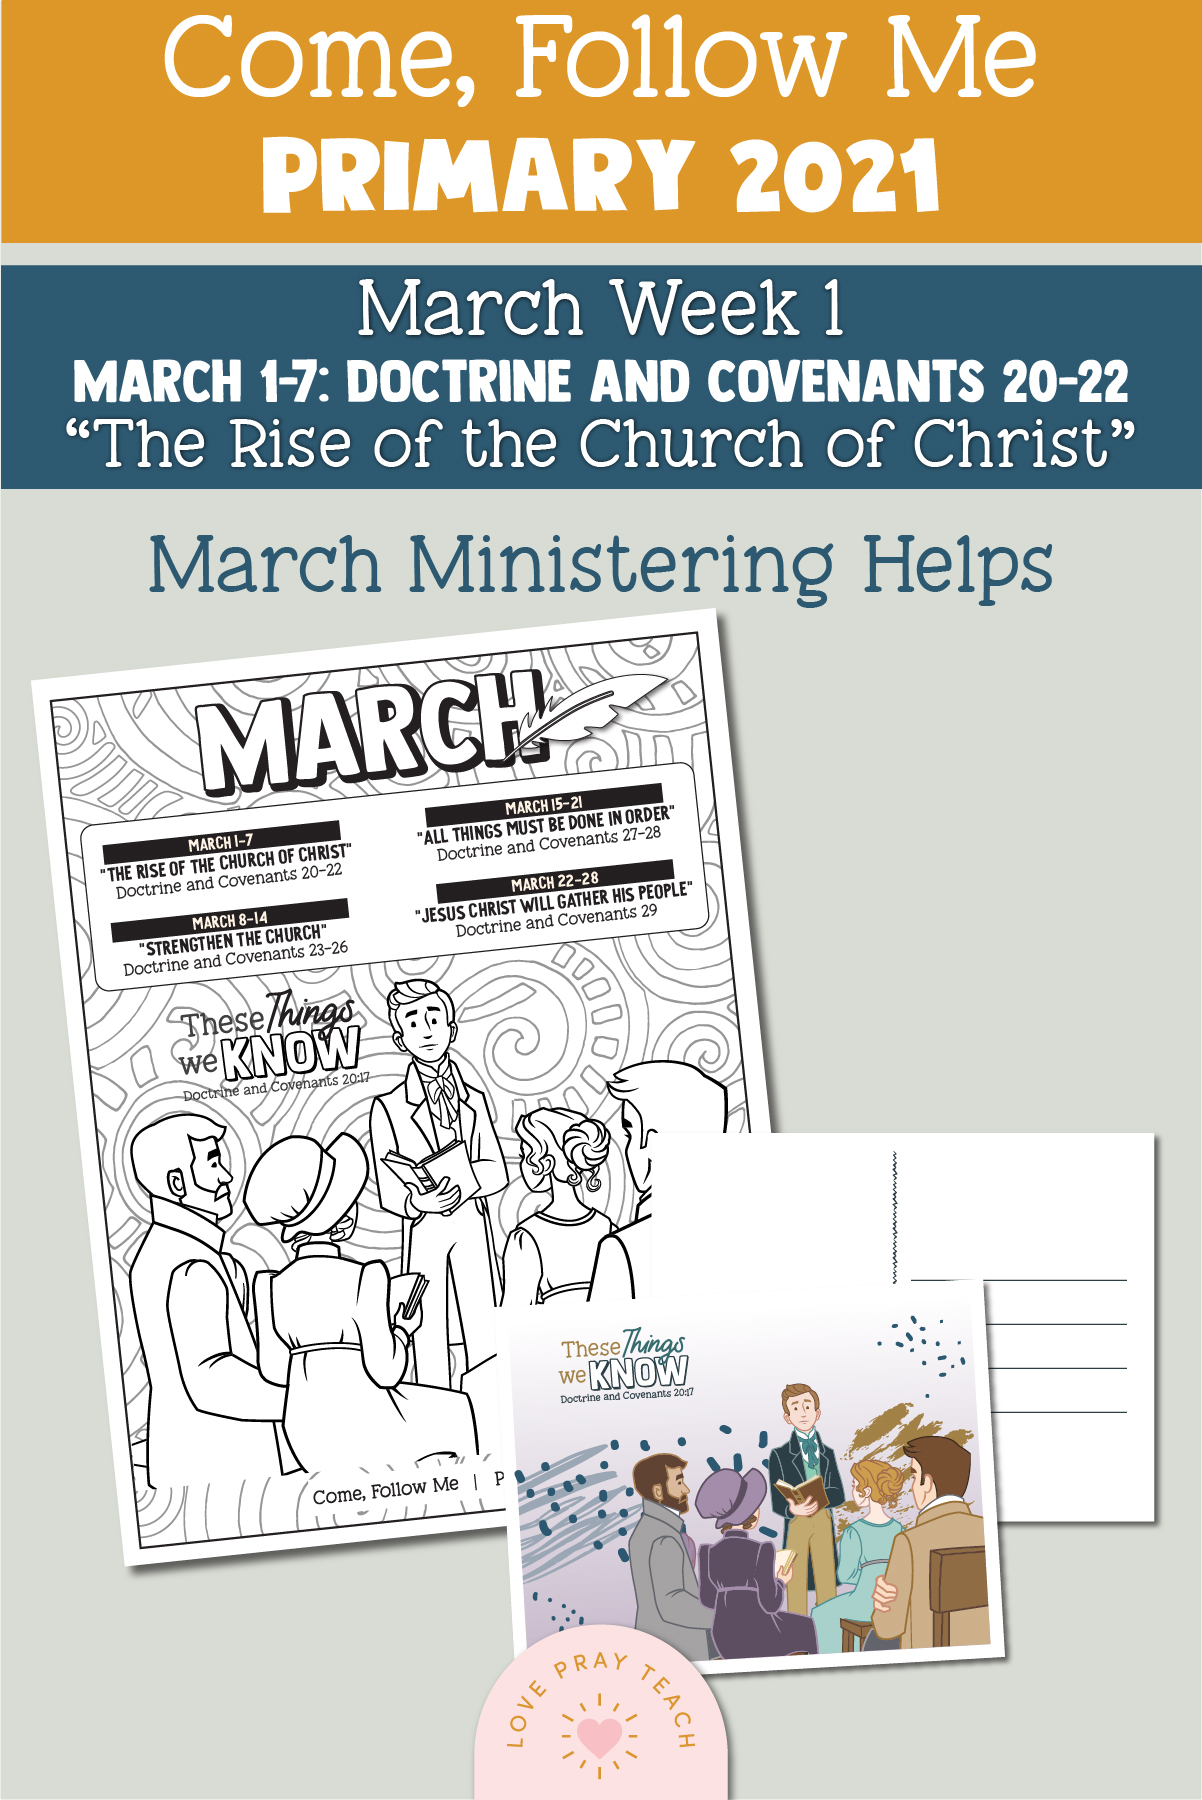 """Come, Follow Me for Primary 2021 March Week 1 Doctrine and Covenants 20-22 """"The Rise of the Church of Christ"""" Printable Lesson Materials"""